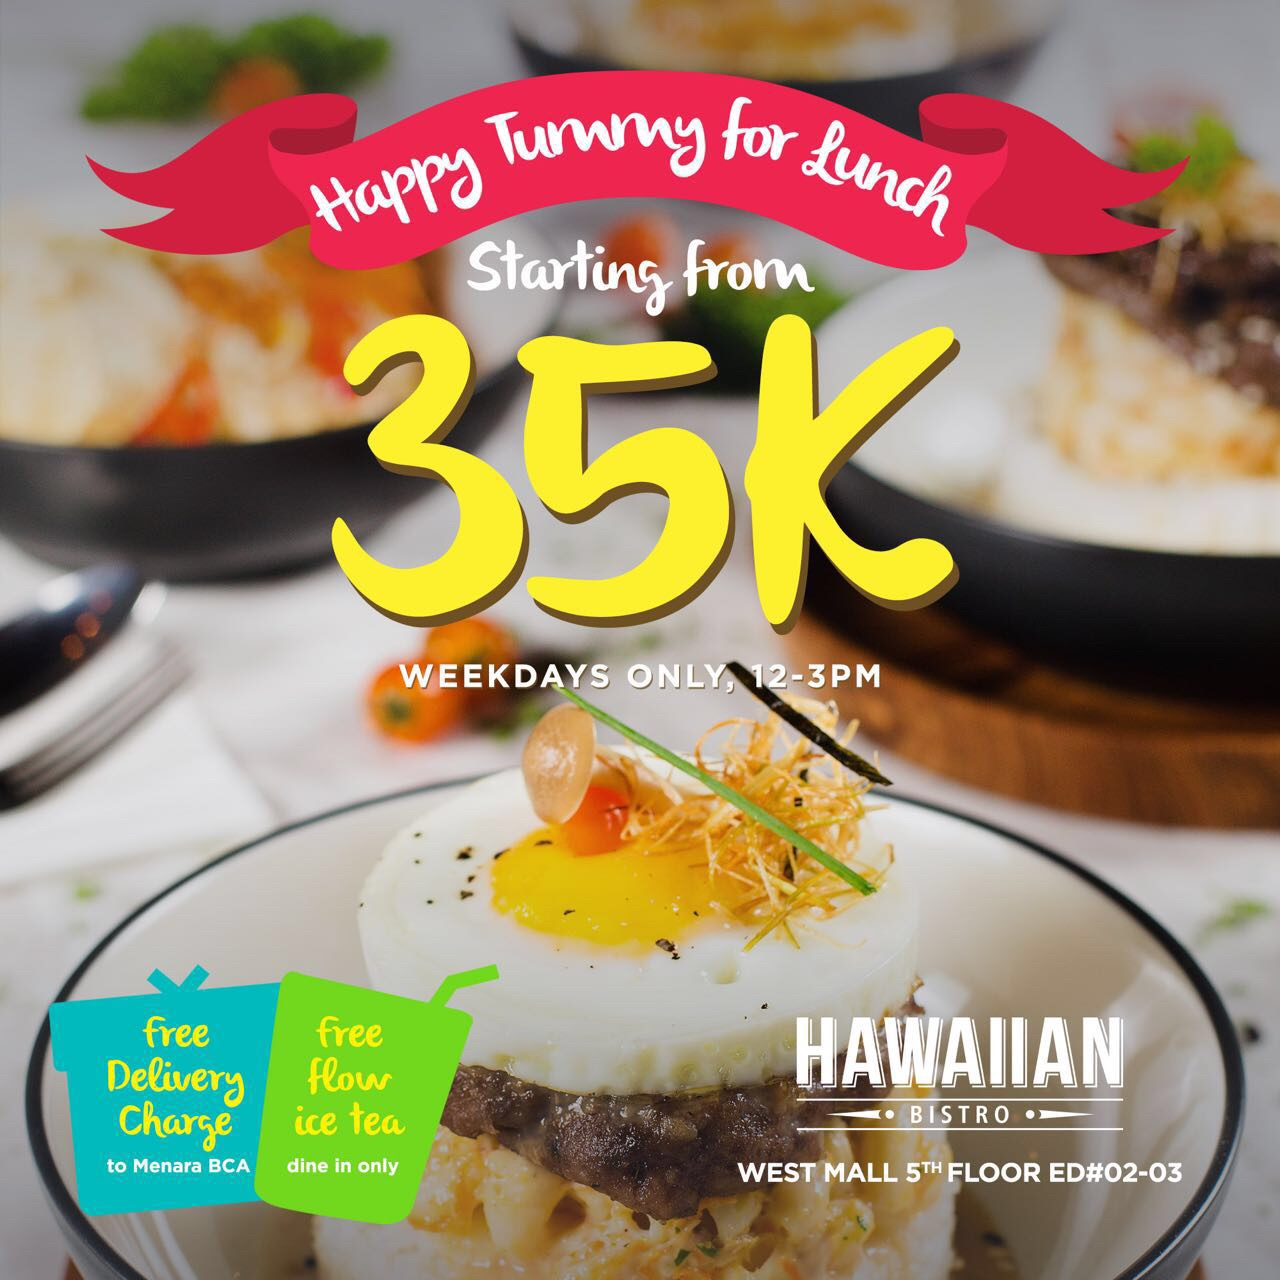 Lunch-deals-venuerific-blog-hawaiian-bistro-poster